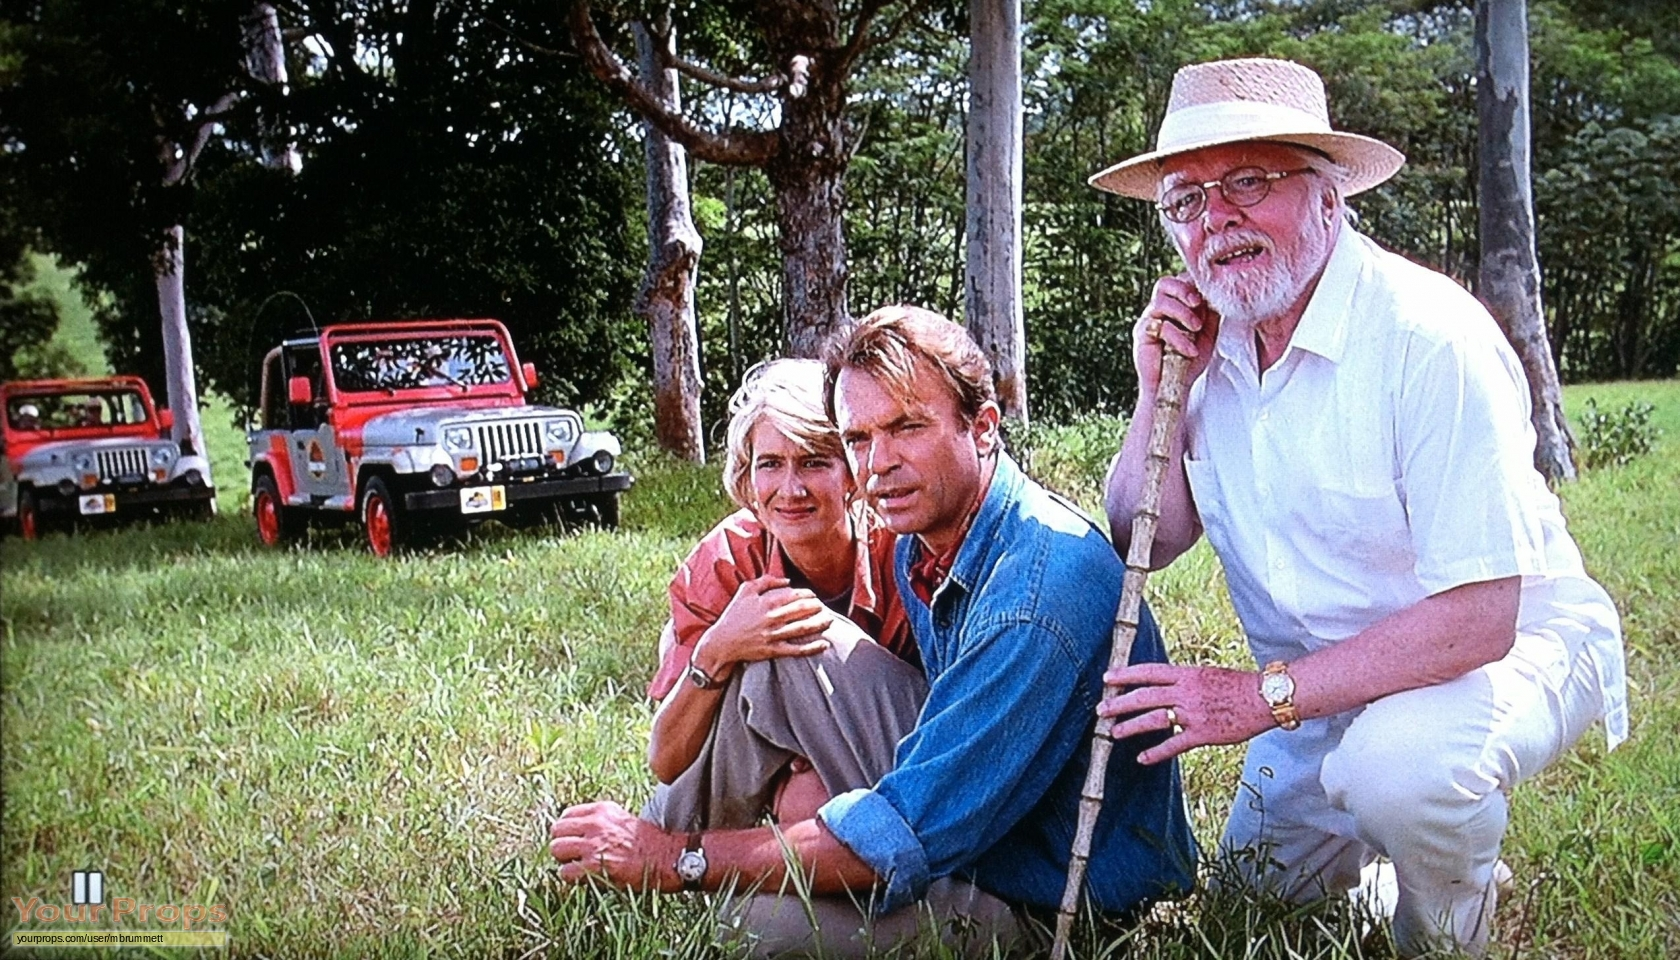 [NEWS CINÉ] JURASSIC WORLD REND HOMMAGE A RICHARD ATTENBOROUGH